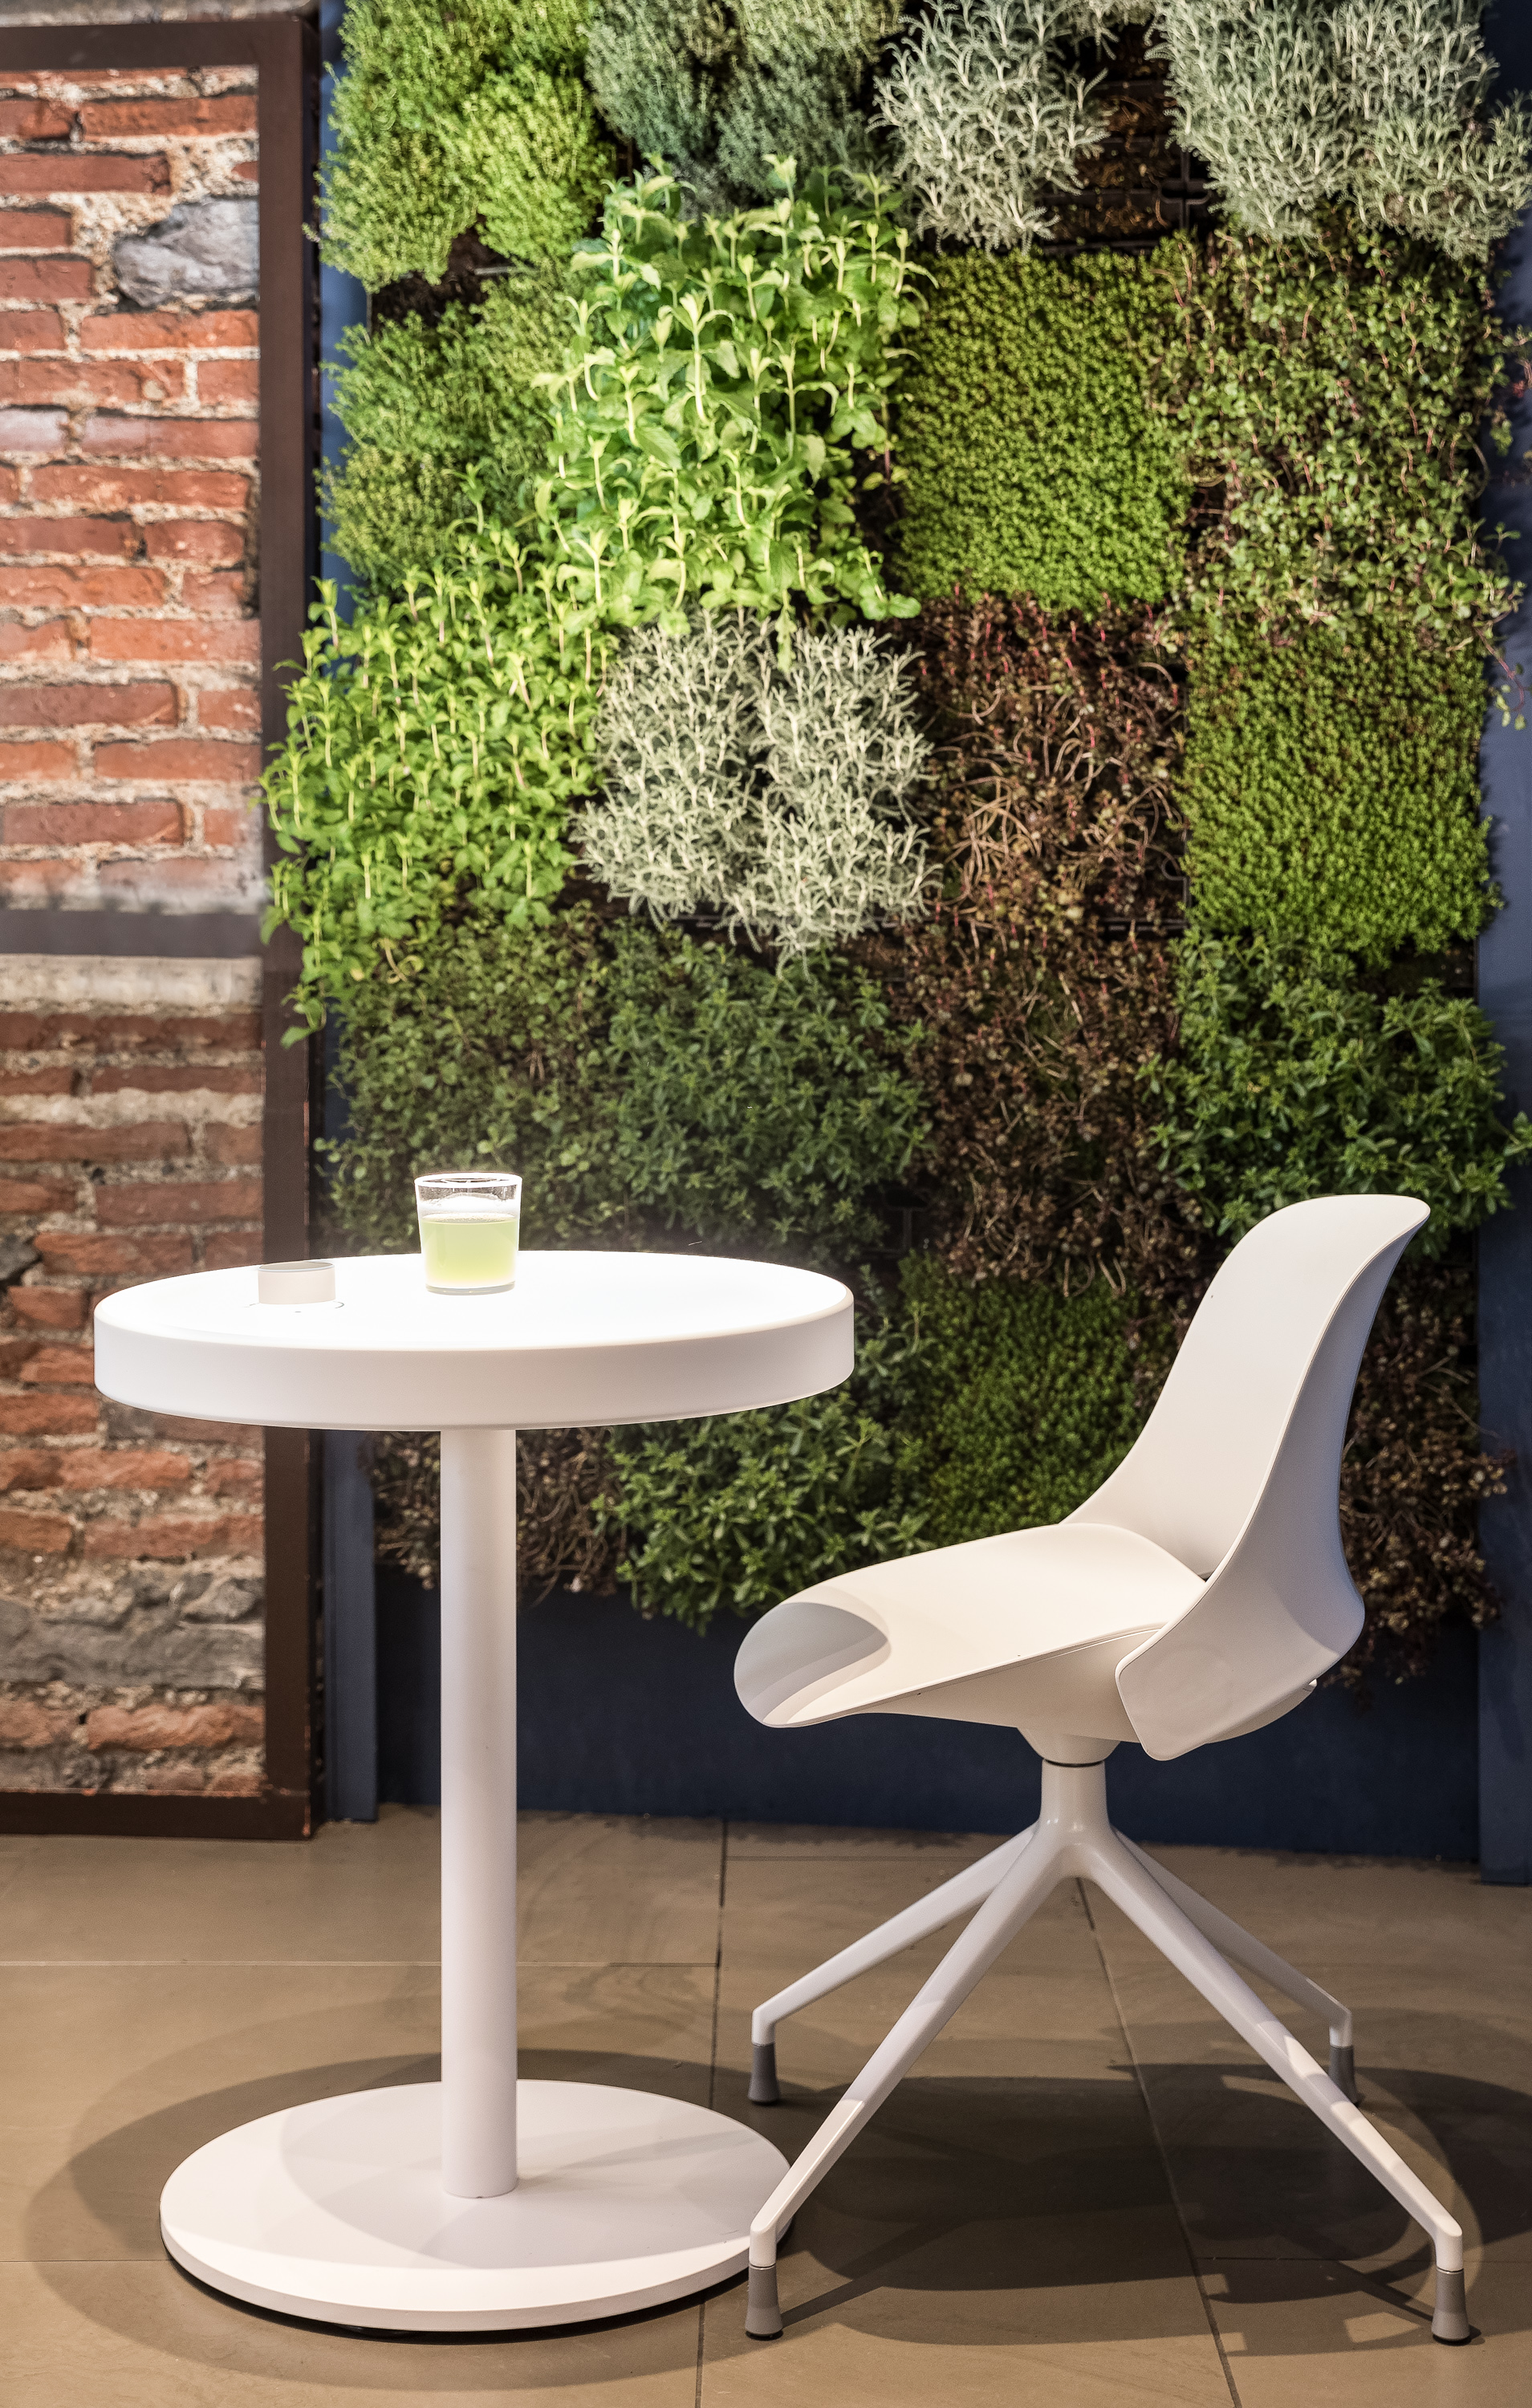 Humanscale RE:CHARGE Café by Todd Bracher - Image by Andrew Habeck